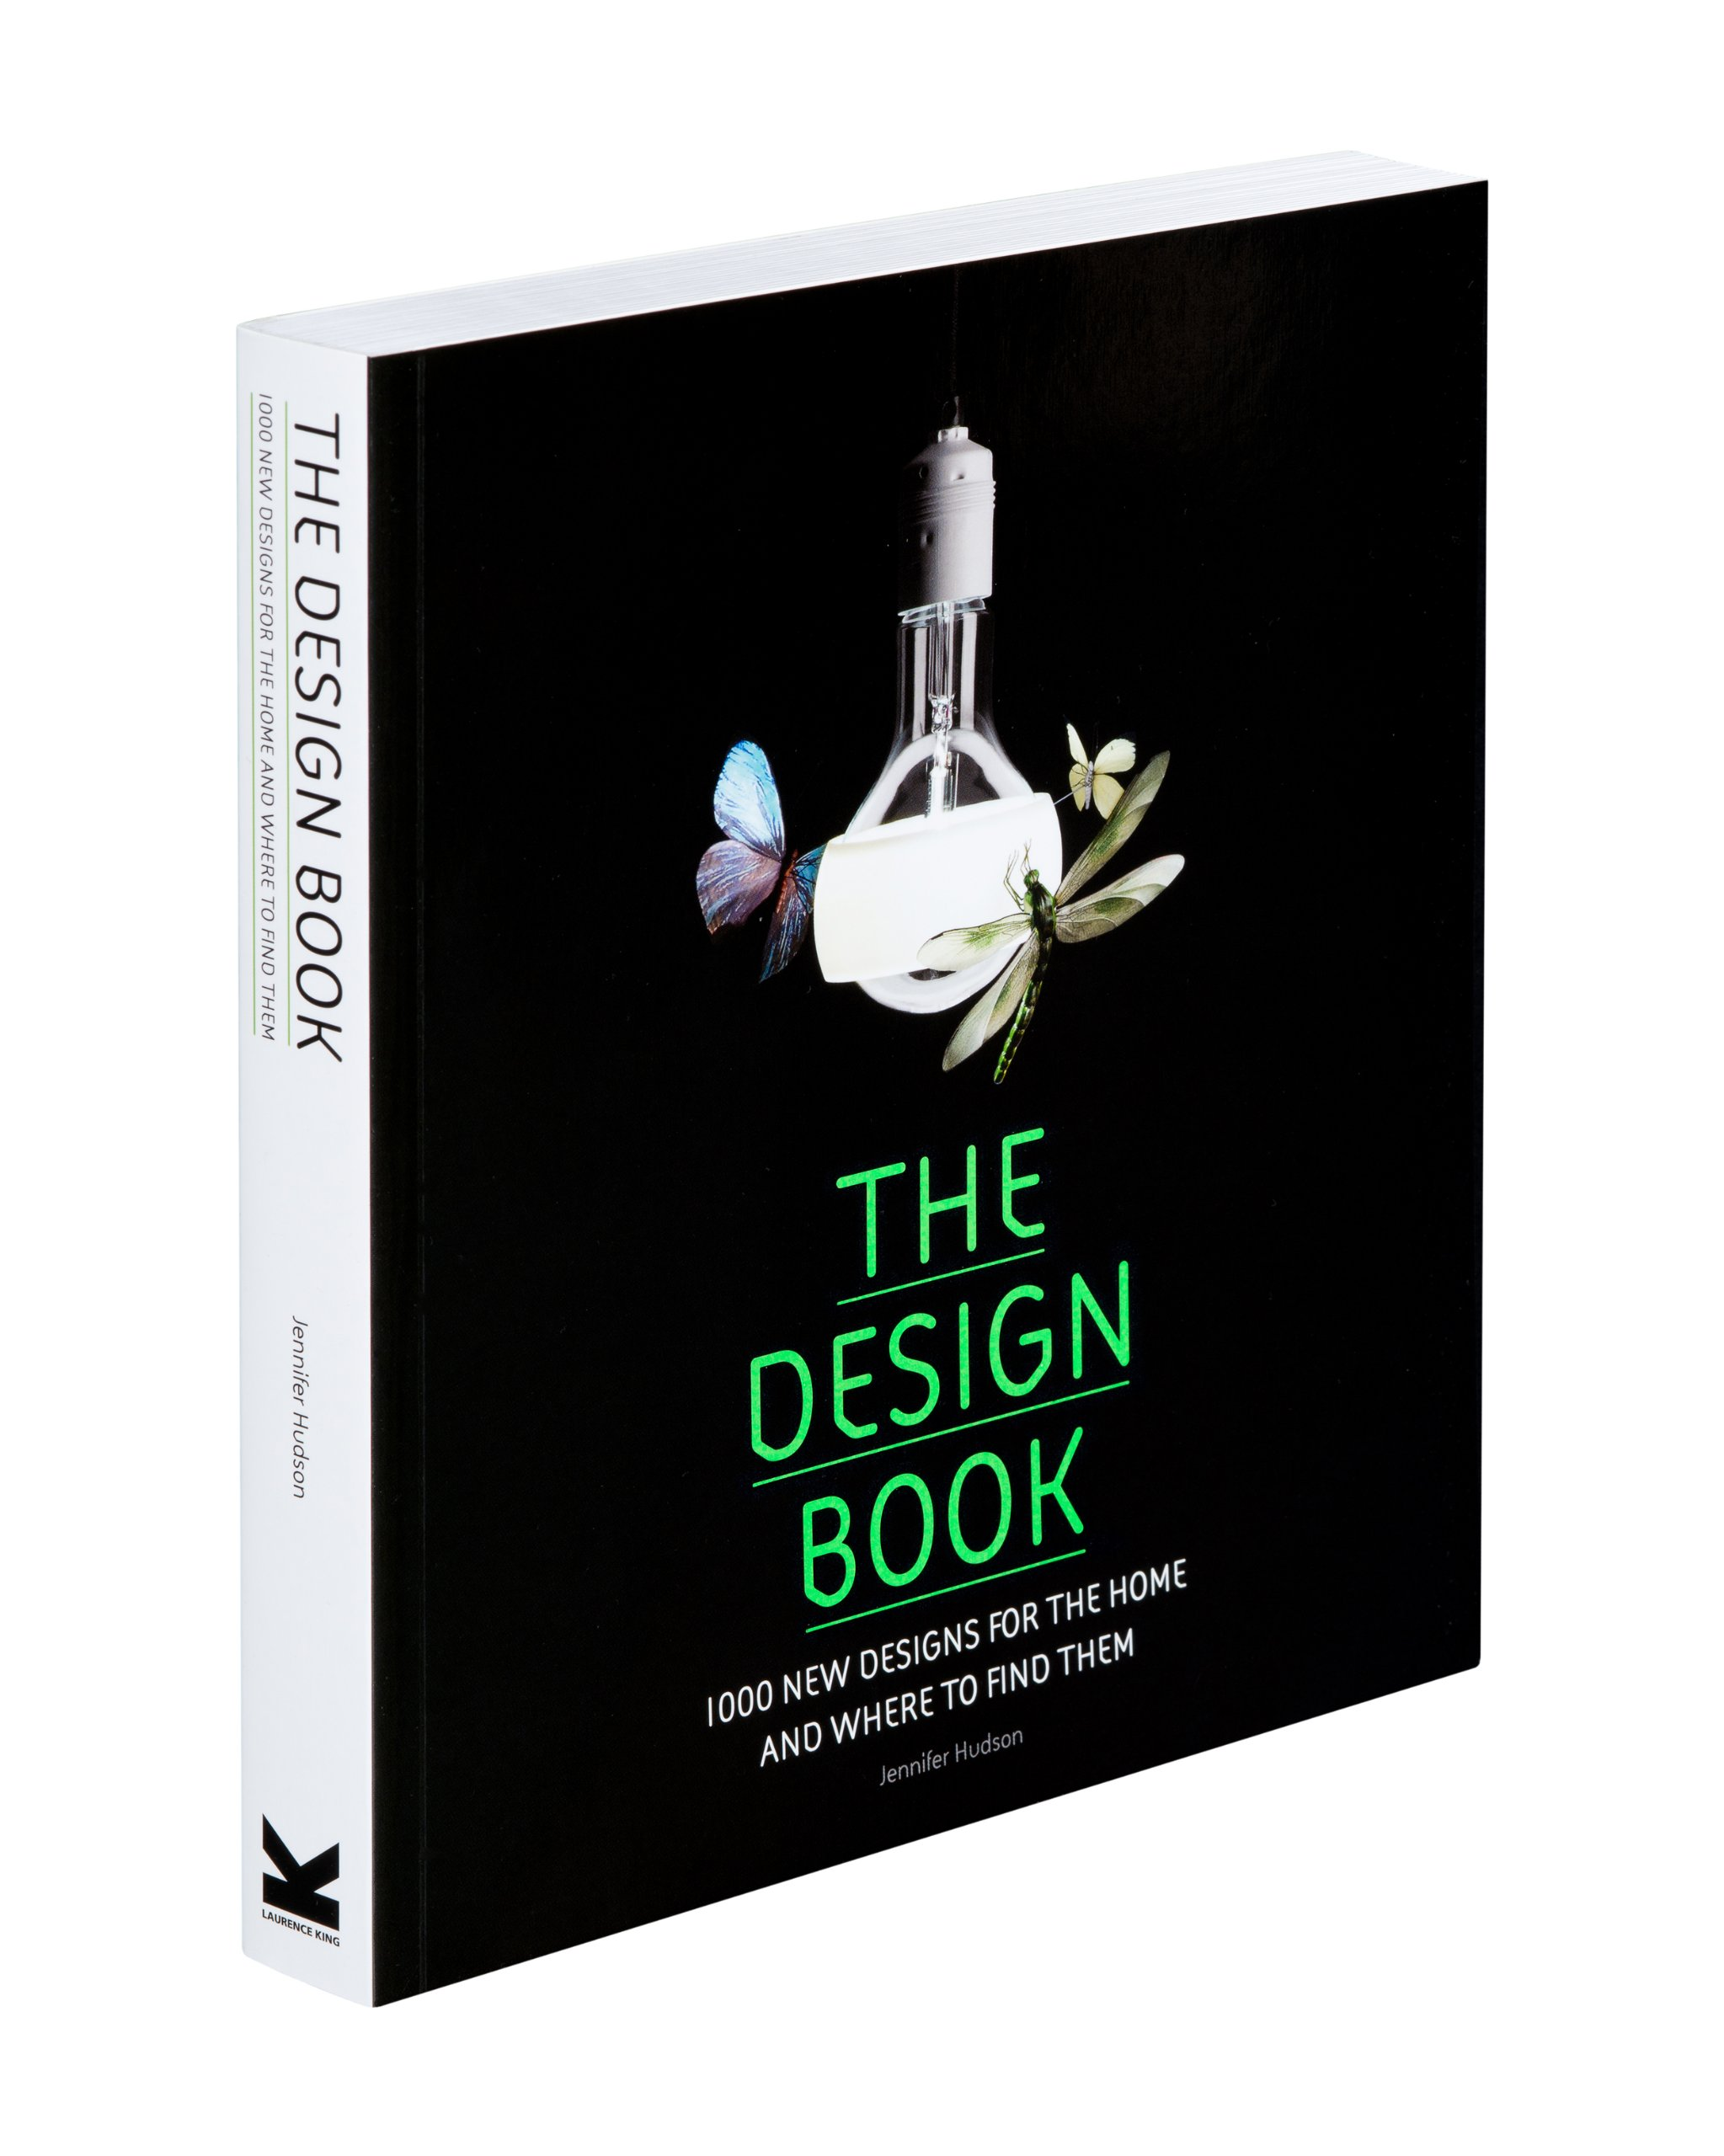 amazon com the design book 1 000 new designs for the home and amazon com the design book 1 000 new designs for the home and where to find them 9781780670997 jennifer hudson books